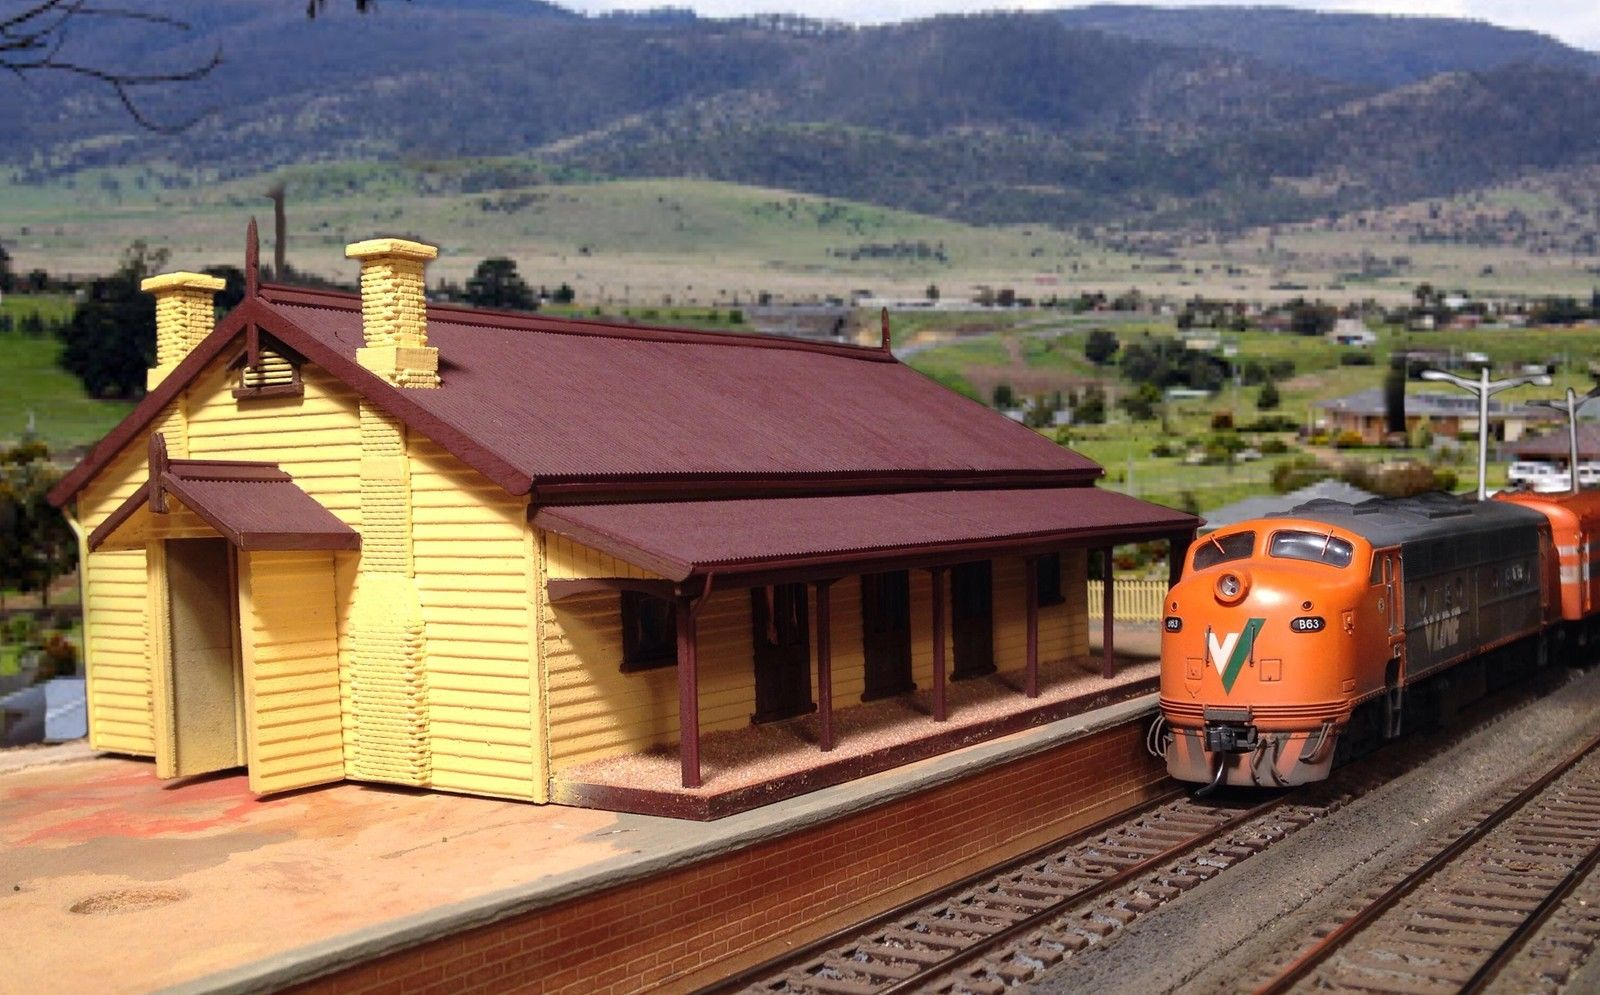 photograph about Printable Model Railroad Buildings identify VR station package Tylden Ho scale creating.